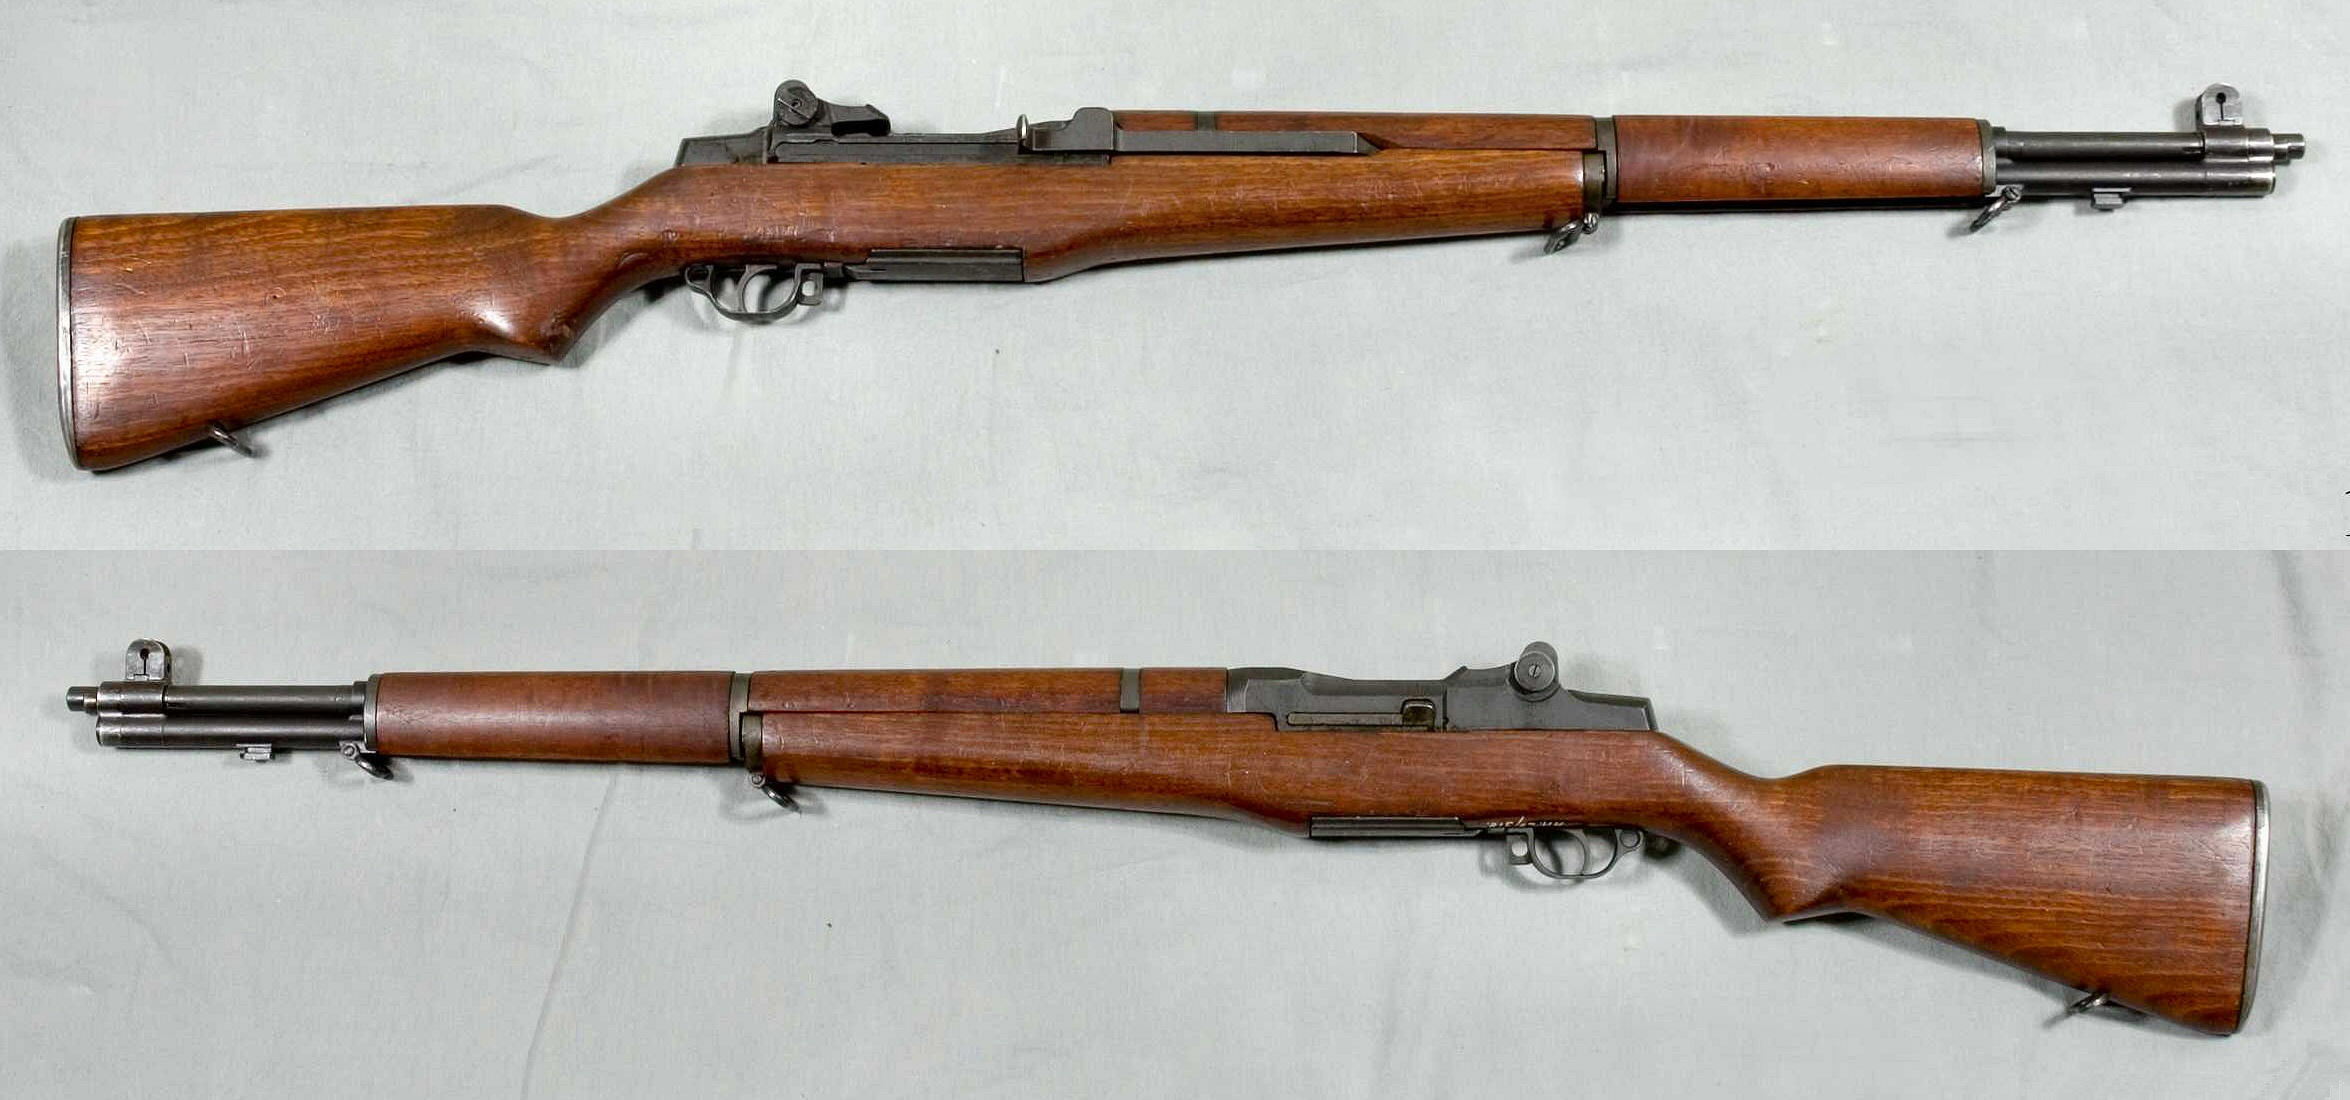 M1 Garand - Wikipedia, the free encyclopedia